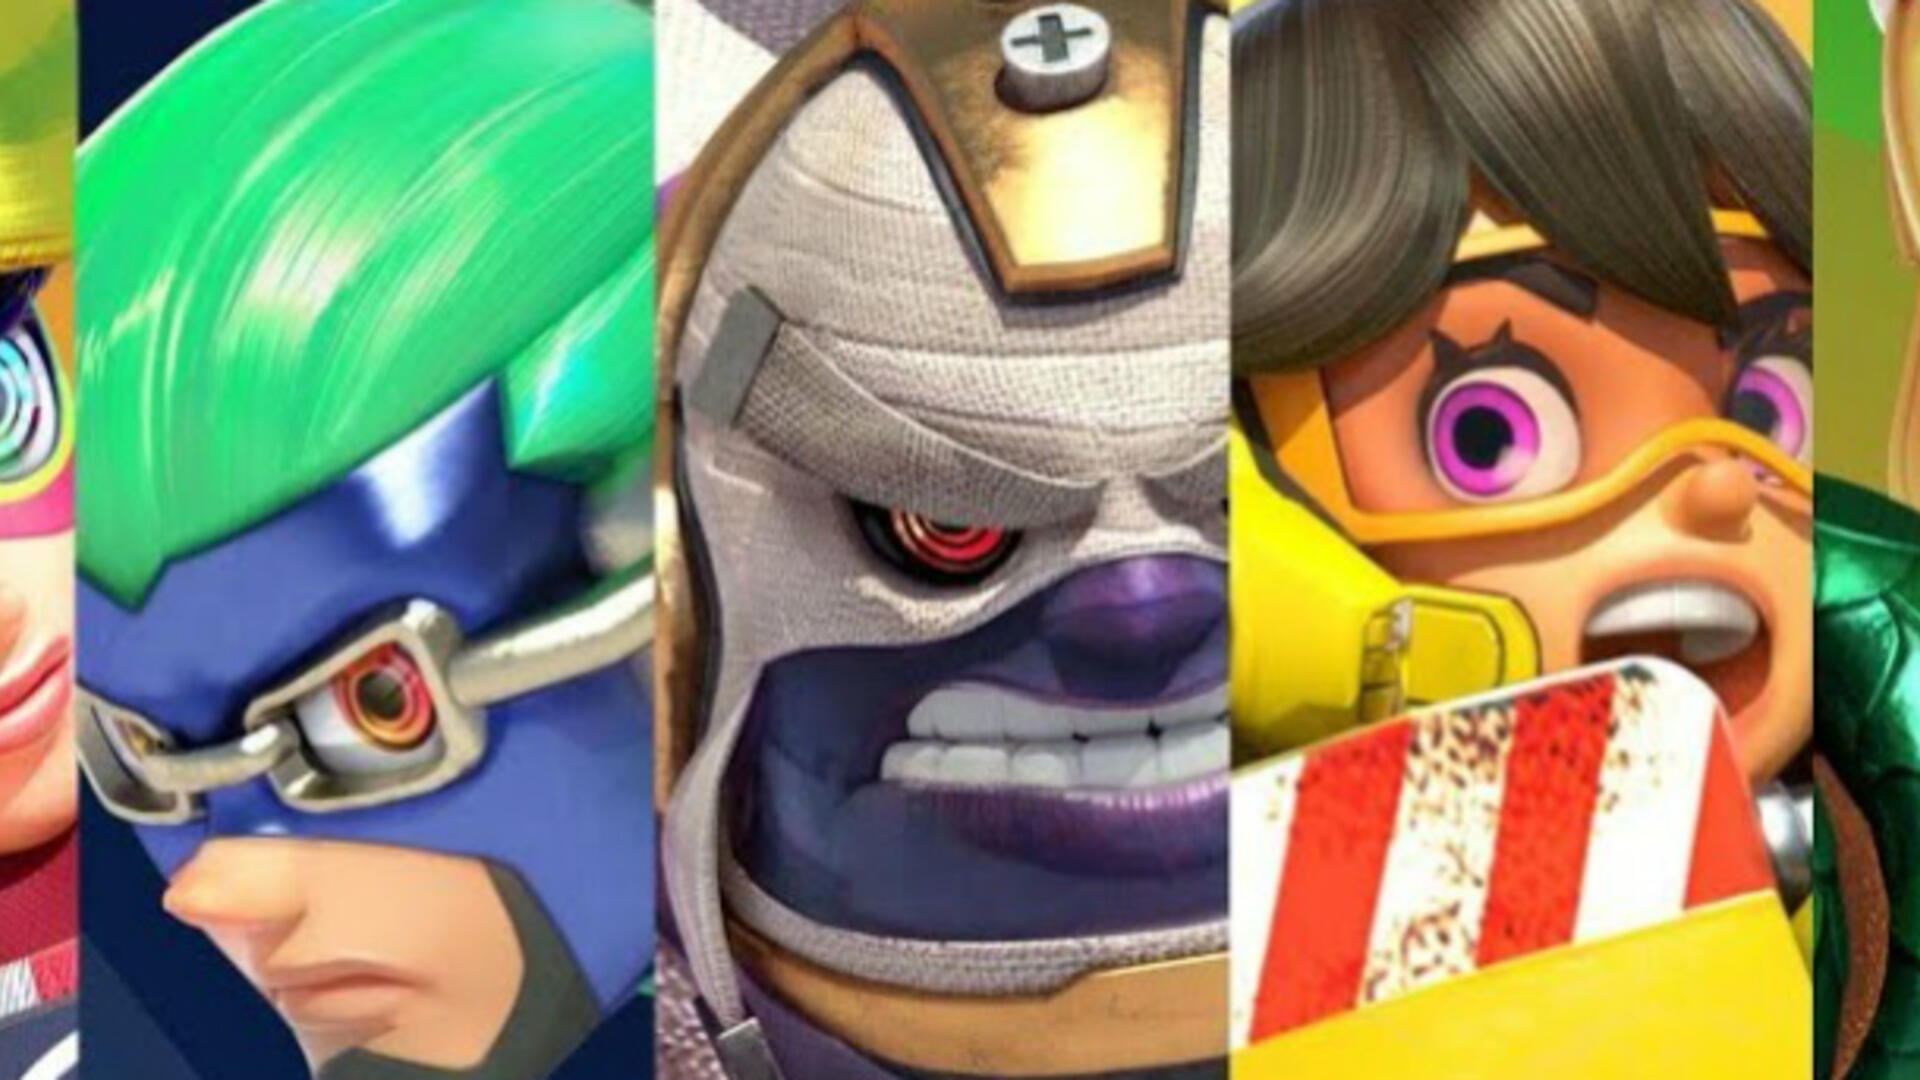 Arms Tier List Nintendo Reveals Who The Top Players Use To Win